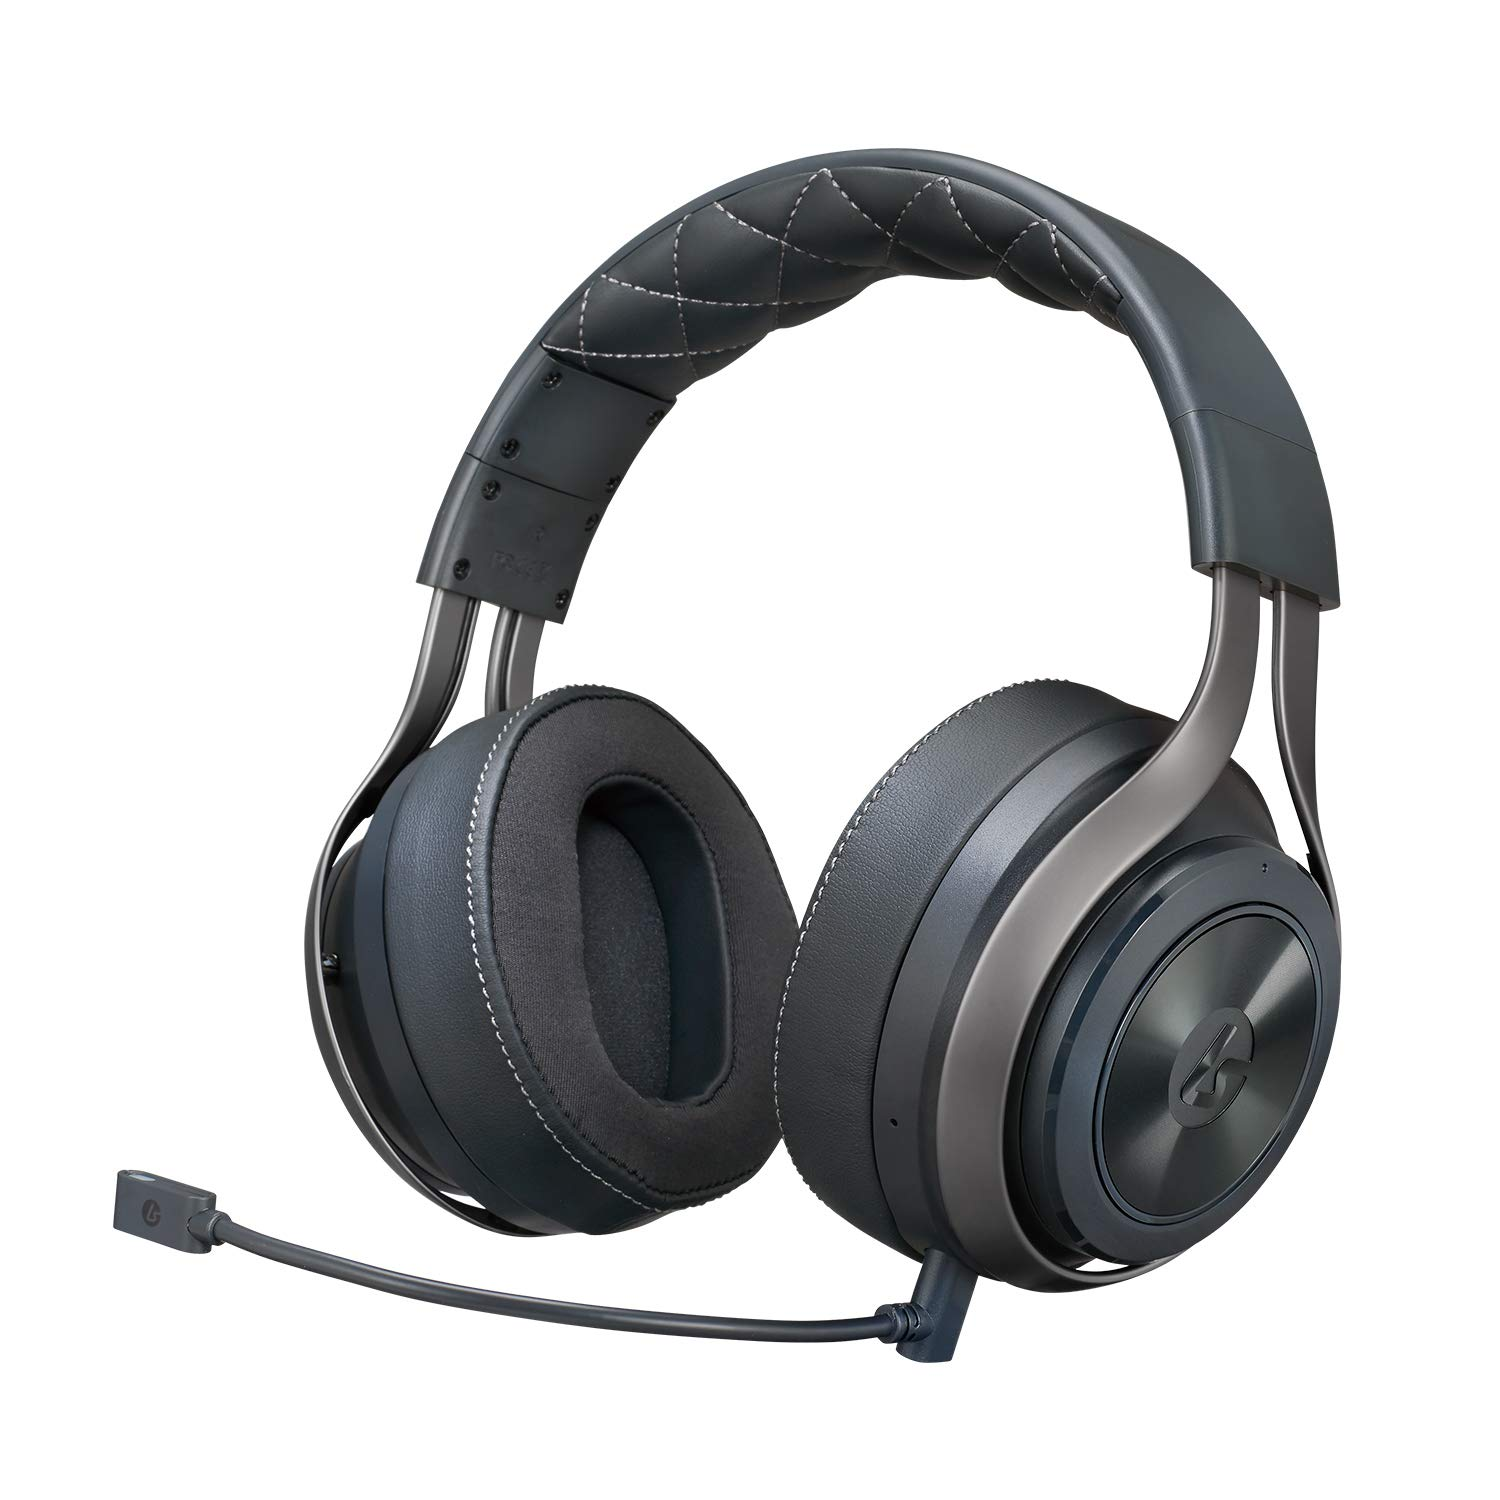 A wireless gaming headset with removable mic and 20 hours of battery life